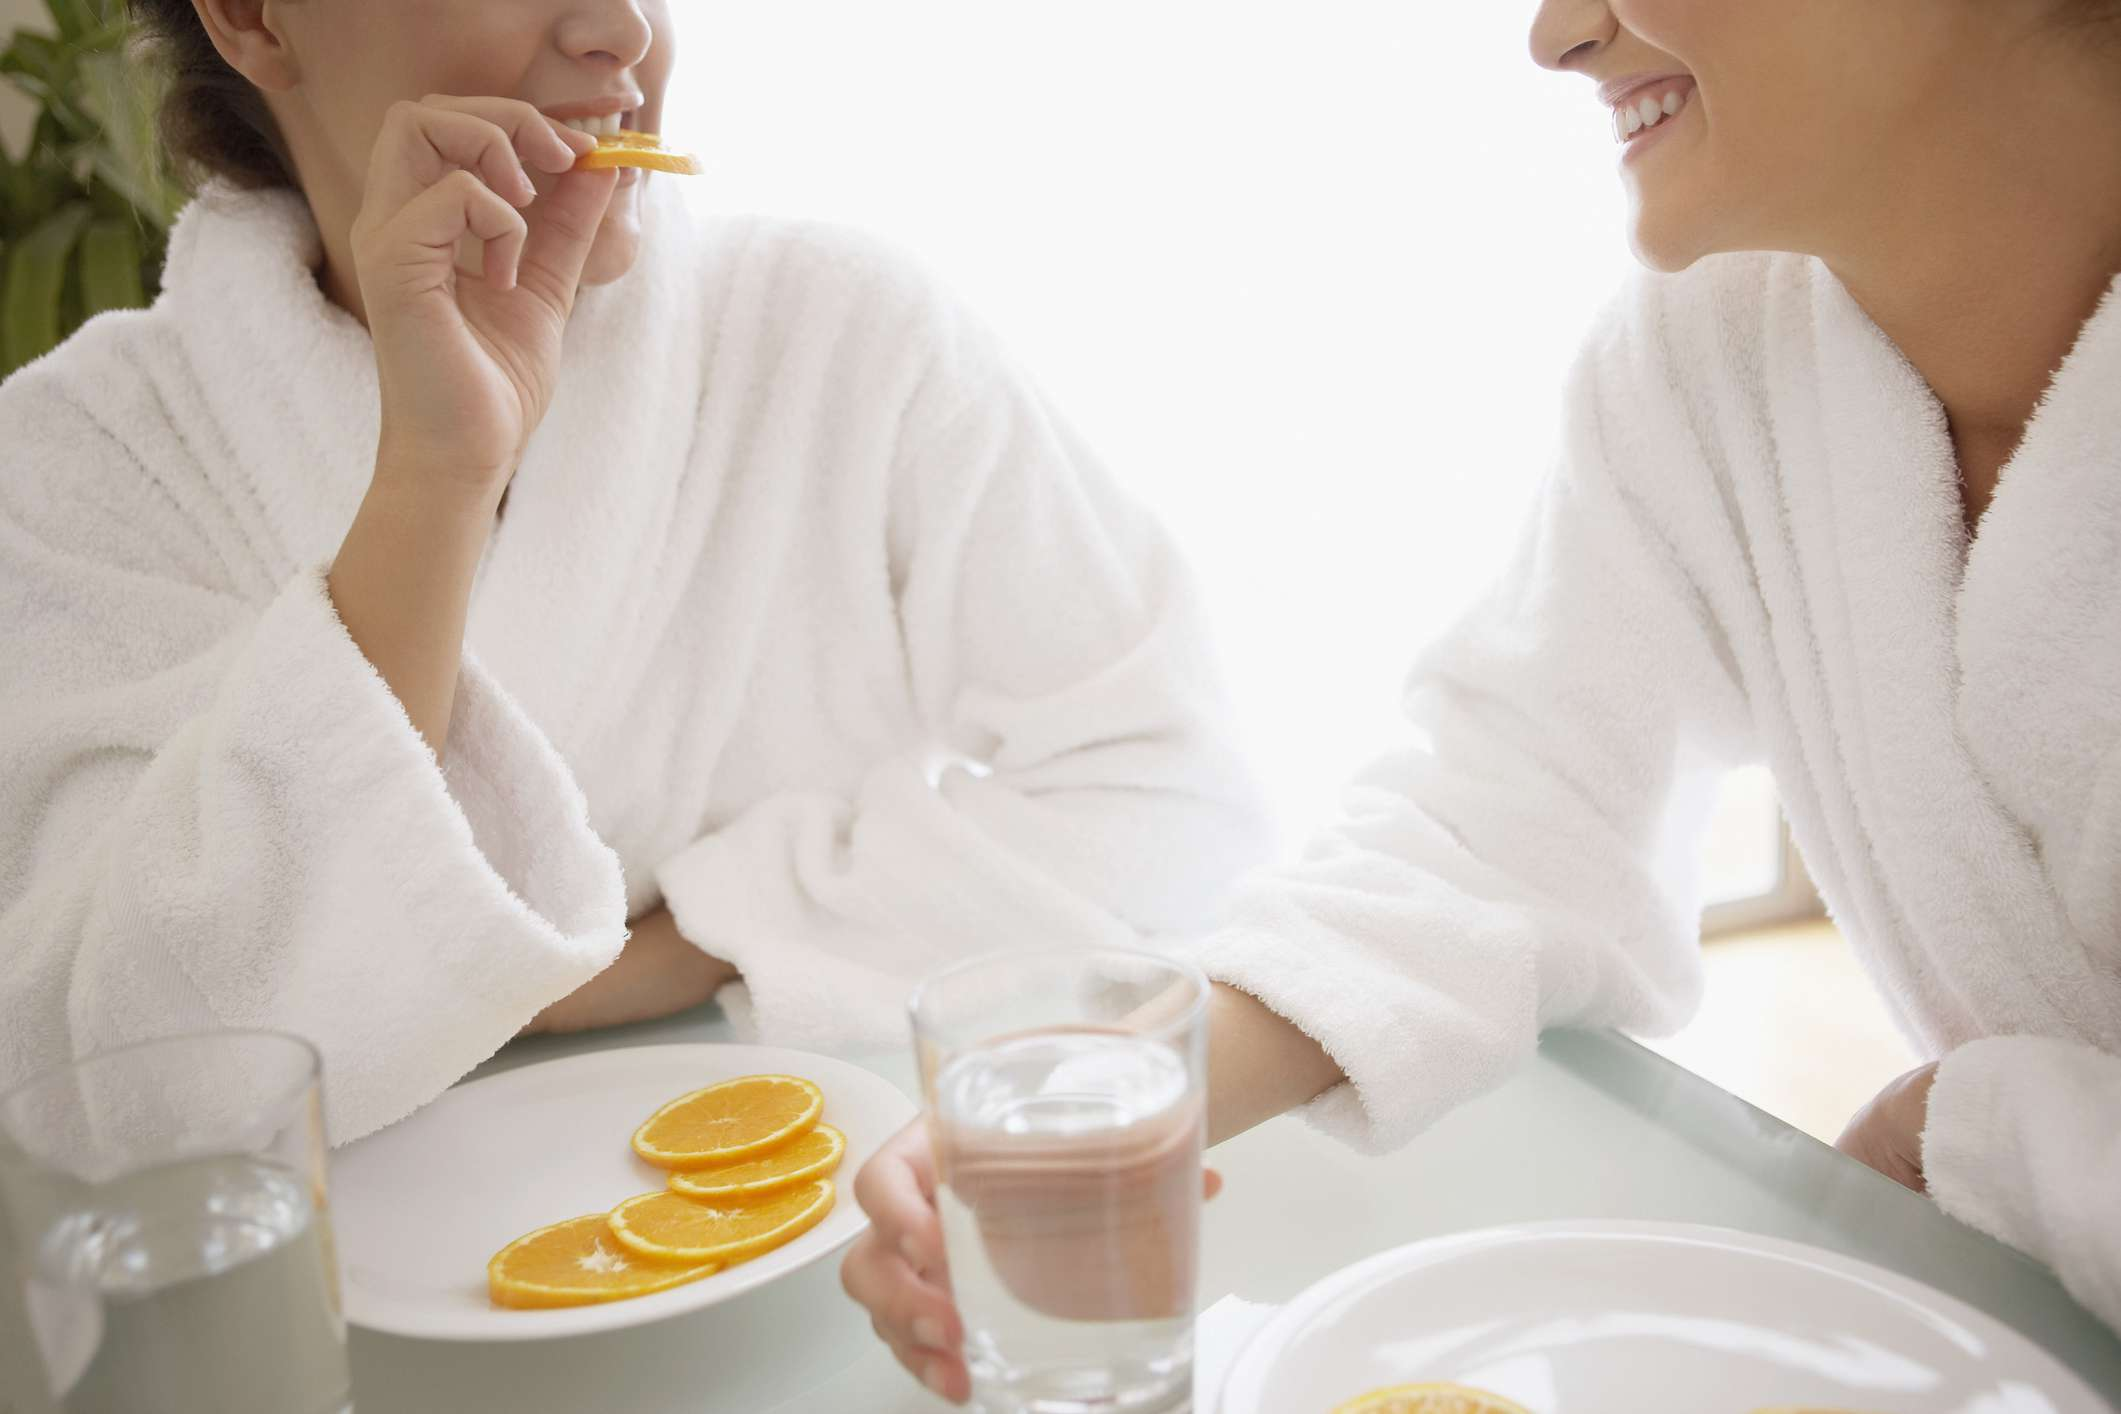 Two women at a weight loss spas